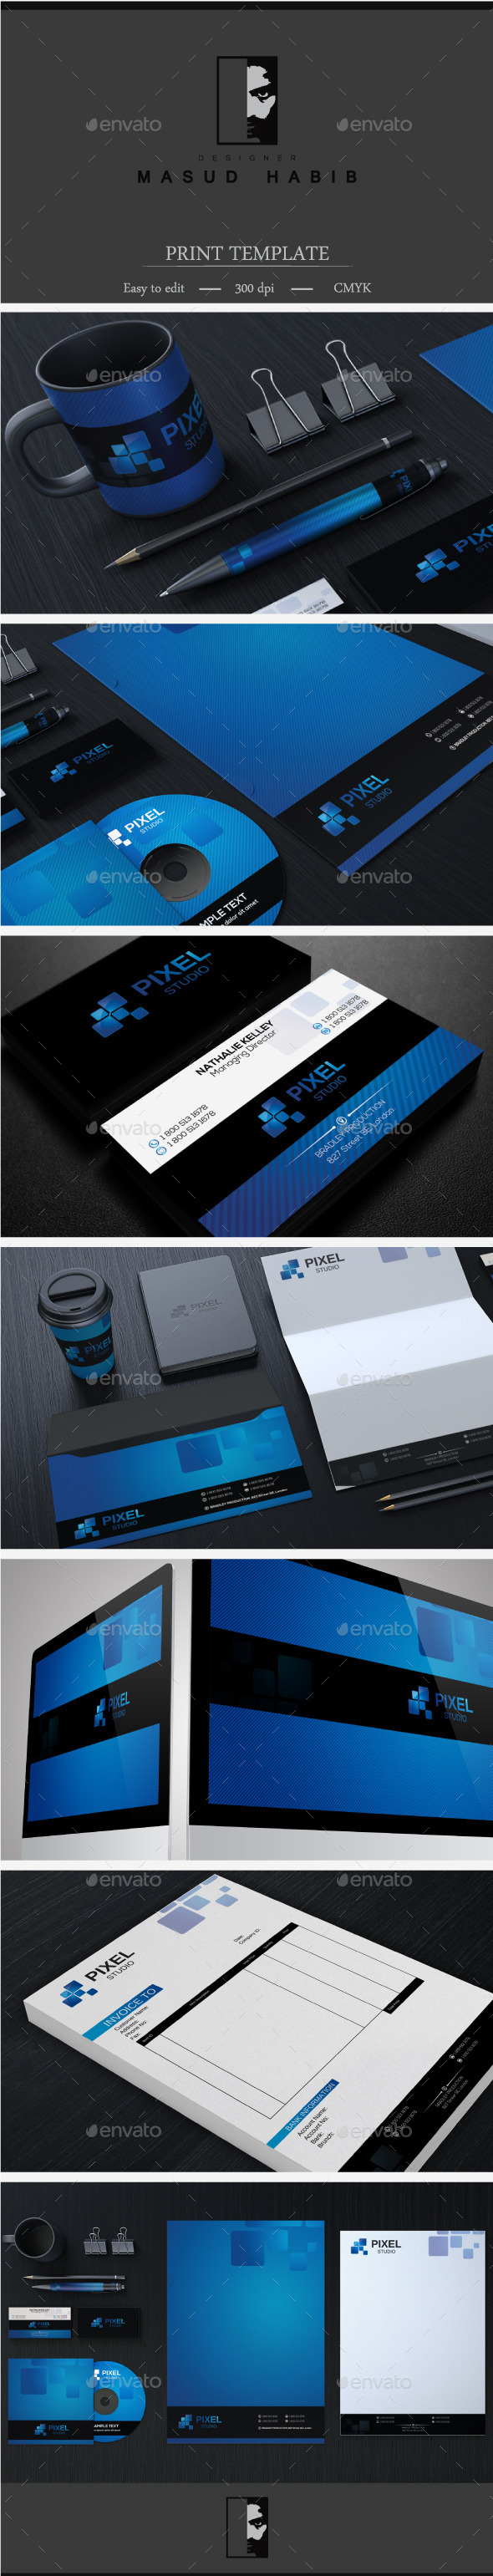 Creative Corporate Identity 23 - Stationery Print Templates